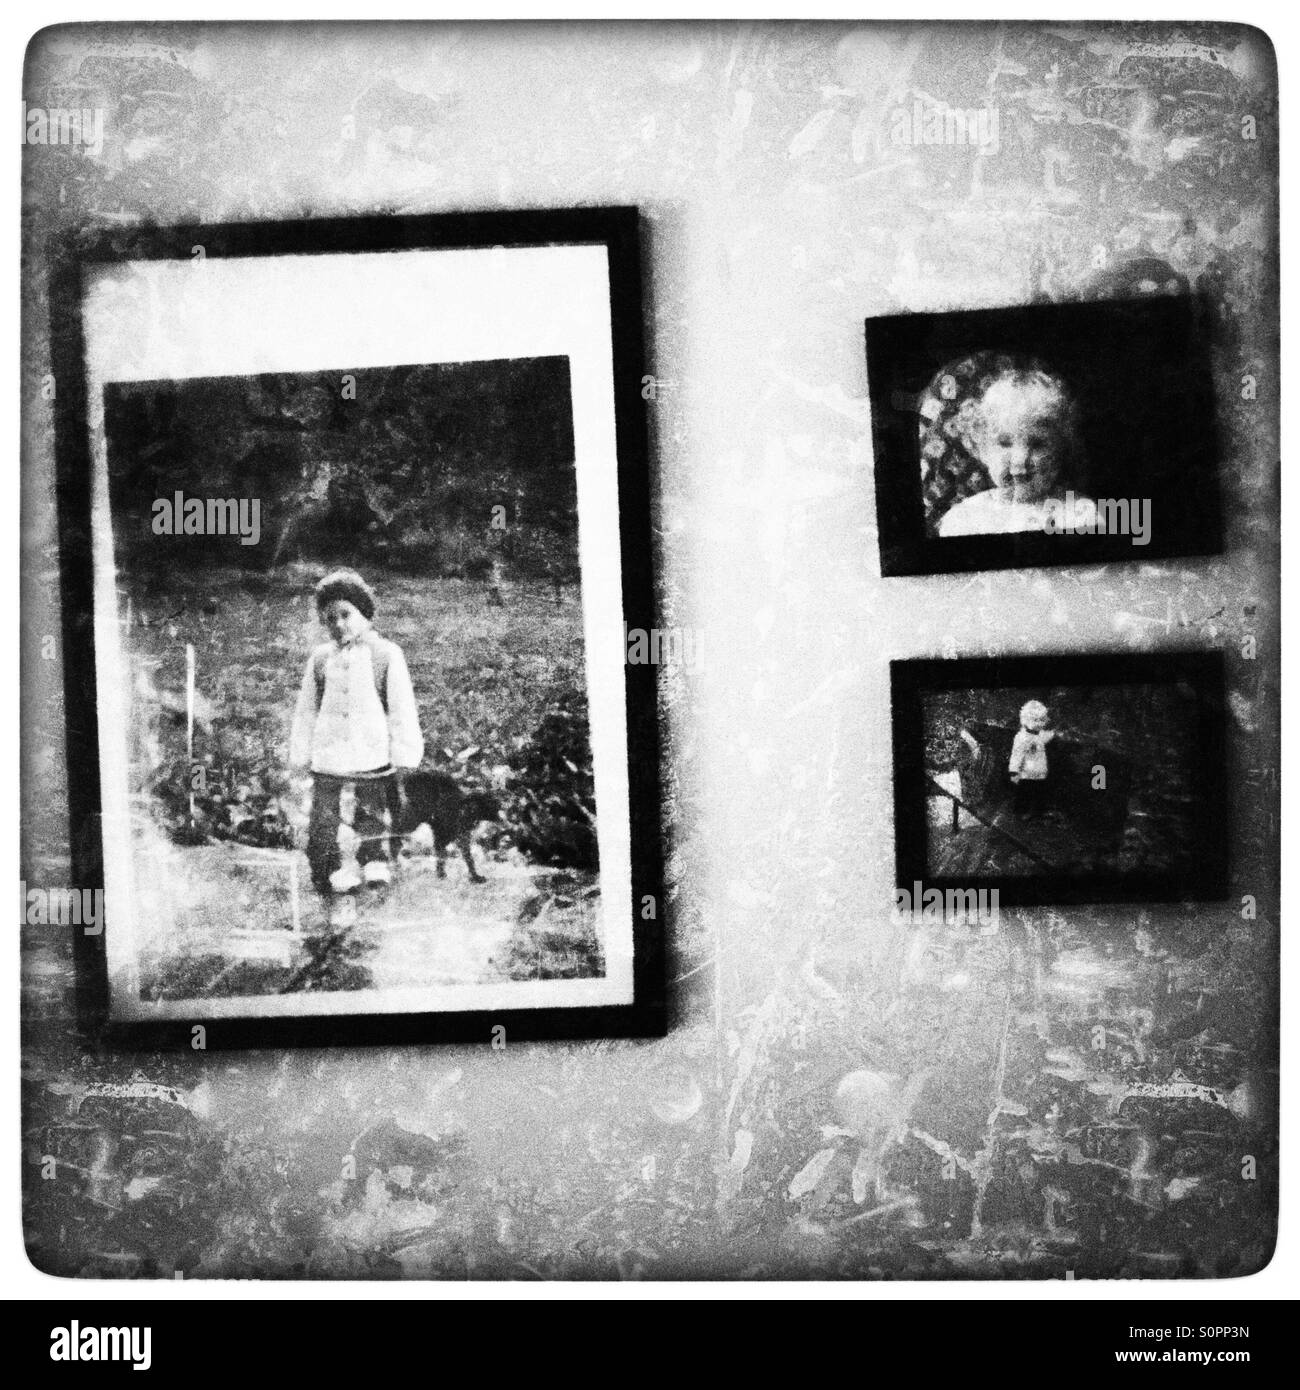 Photos on the wall - Stock Image